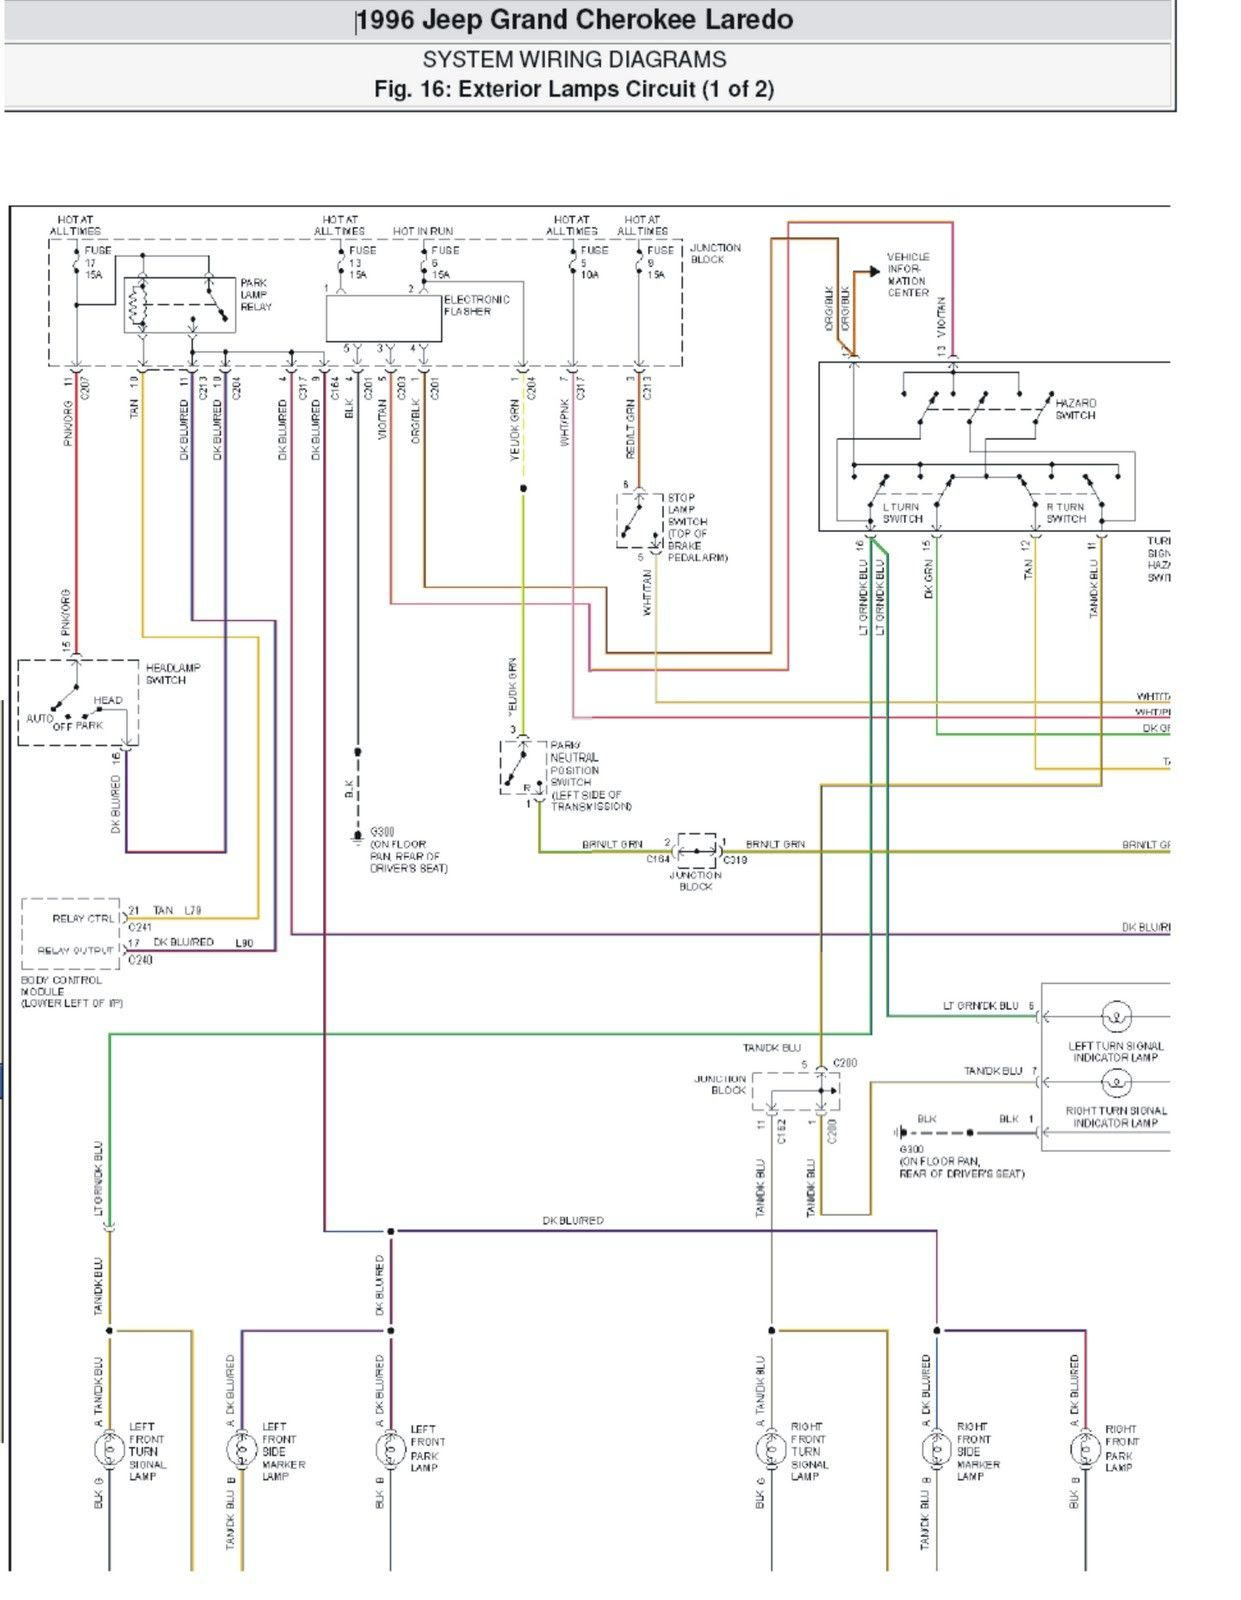 2001 Jeep Cherokee Wiring Diagram In 2021 Jeep Grand Cherokee 2005 Jeep Grand Cherokee Jeep Grand Cherokee Laredo